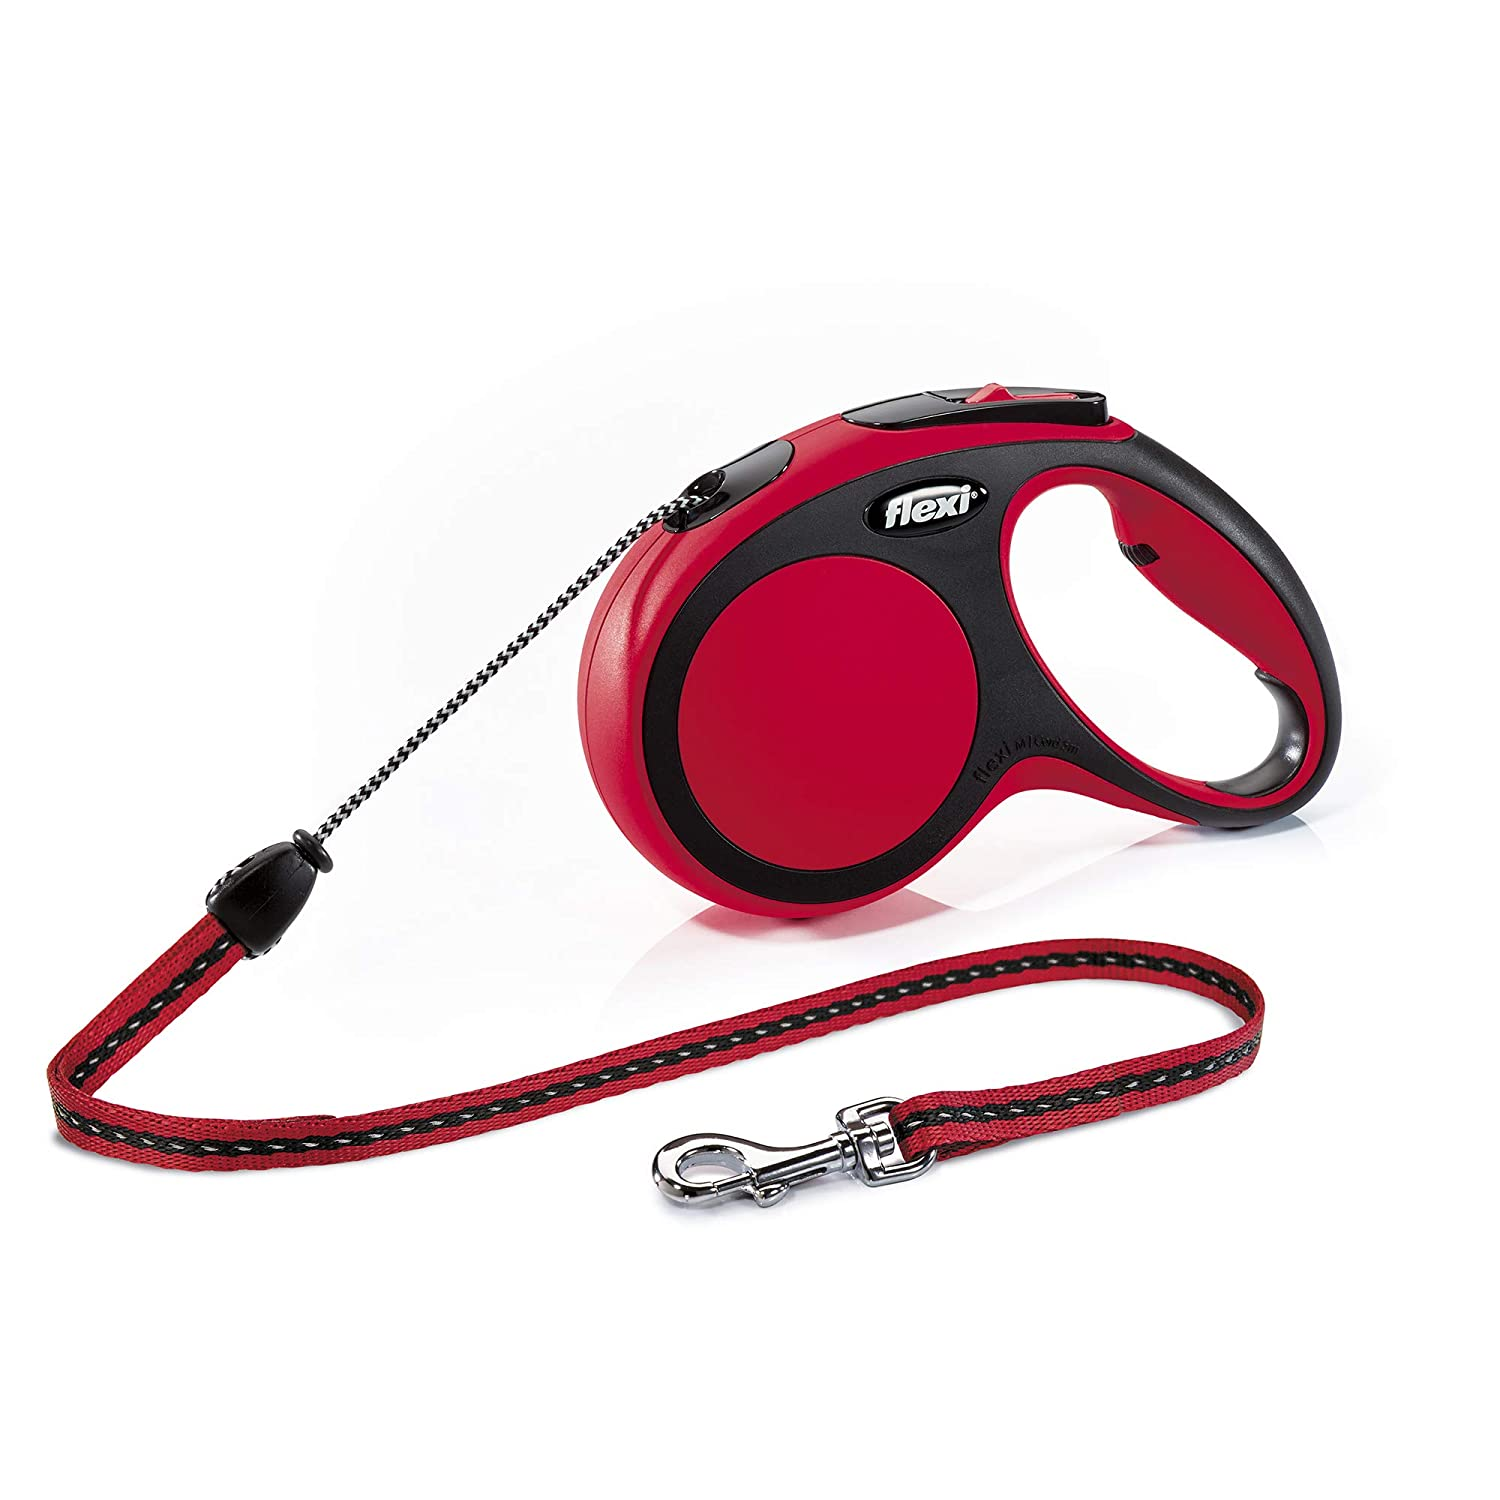 12 kg Small flexi New Comfort Leash Red